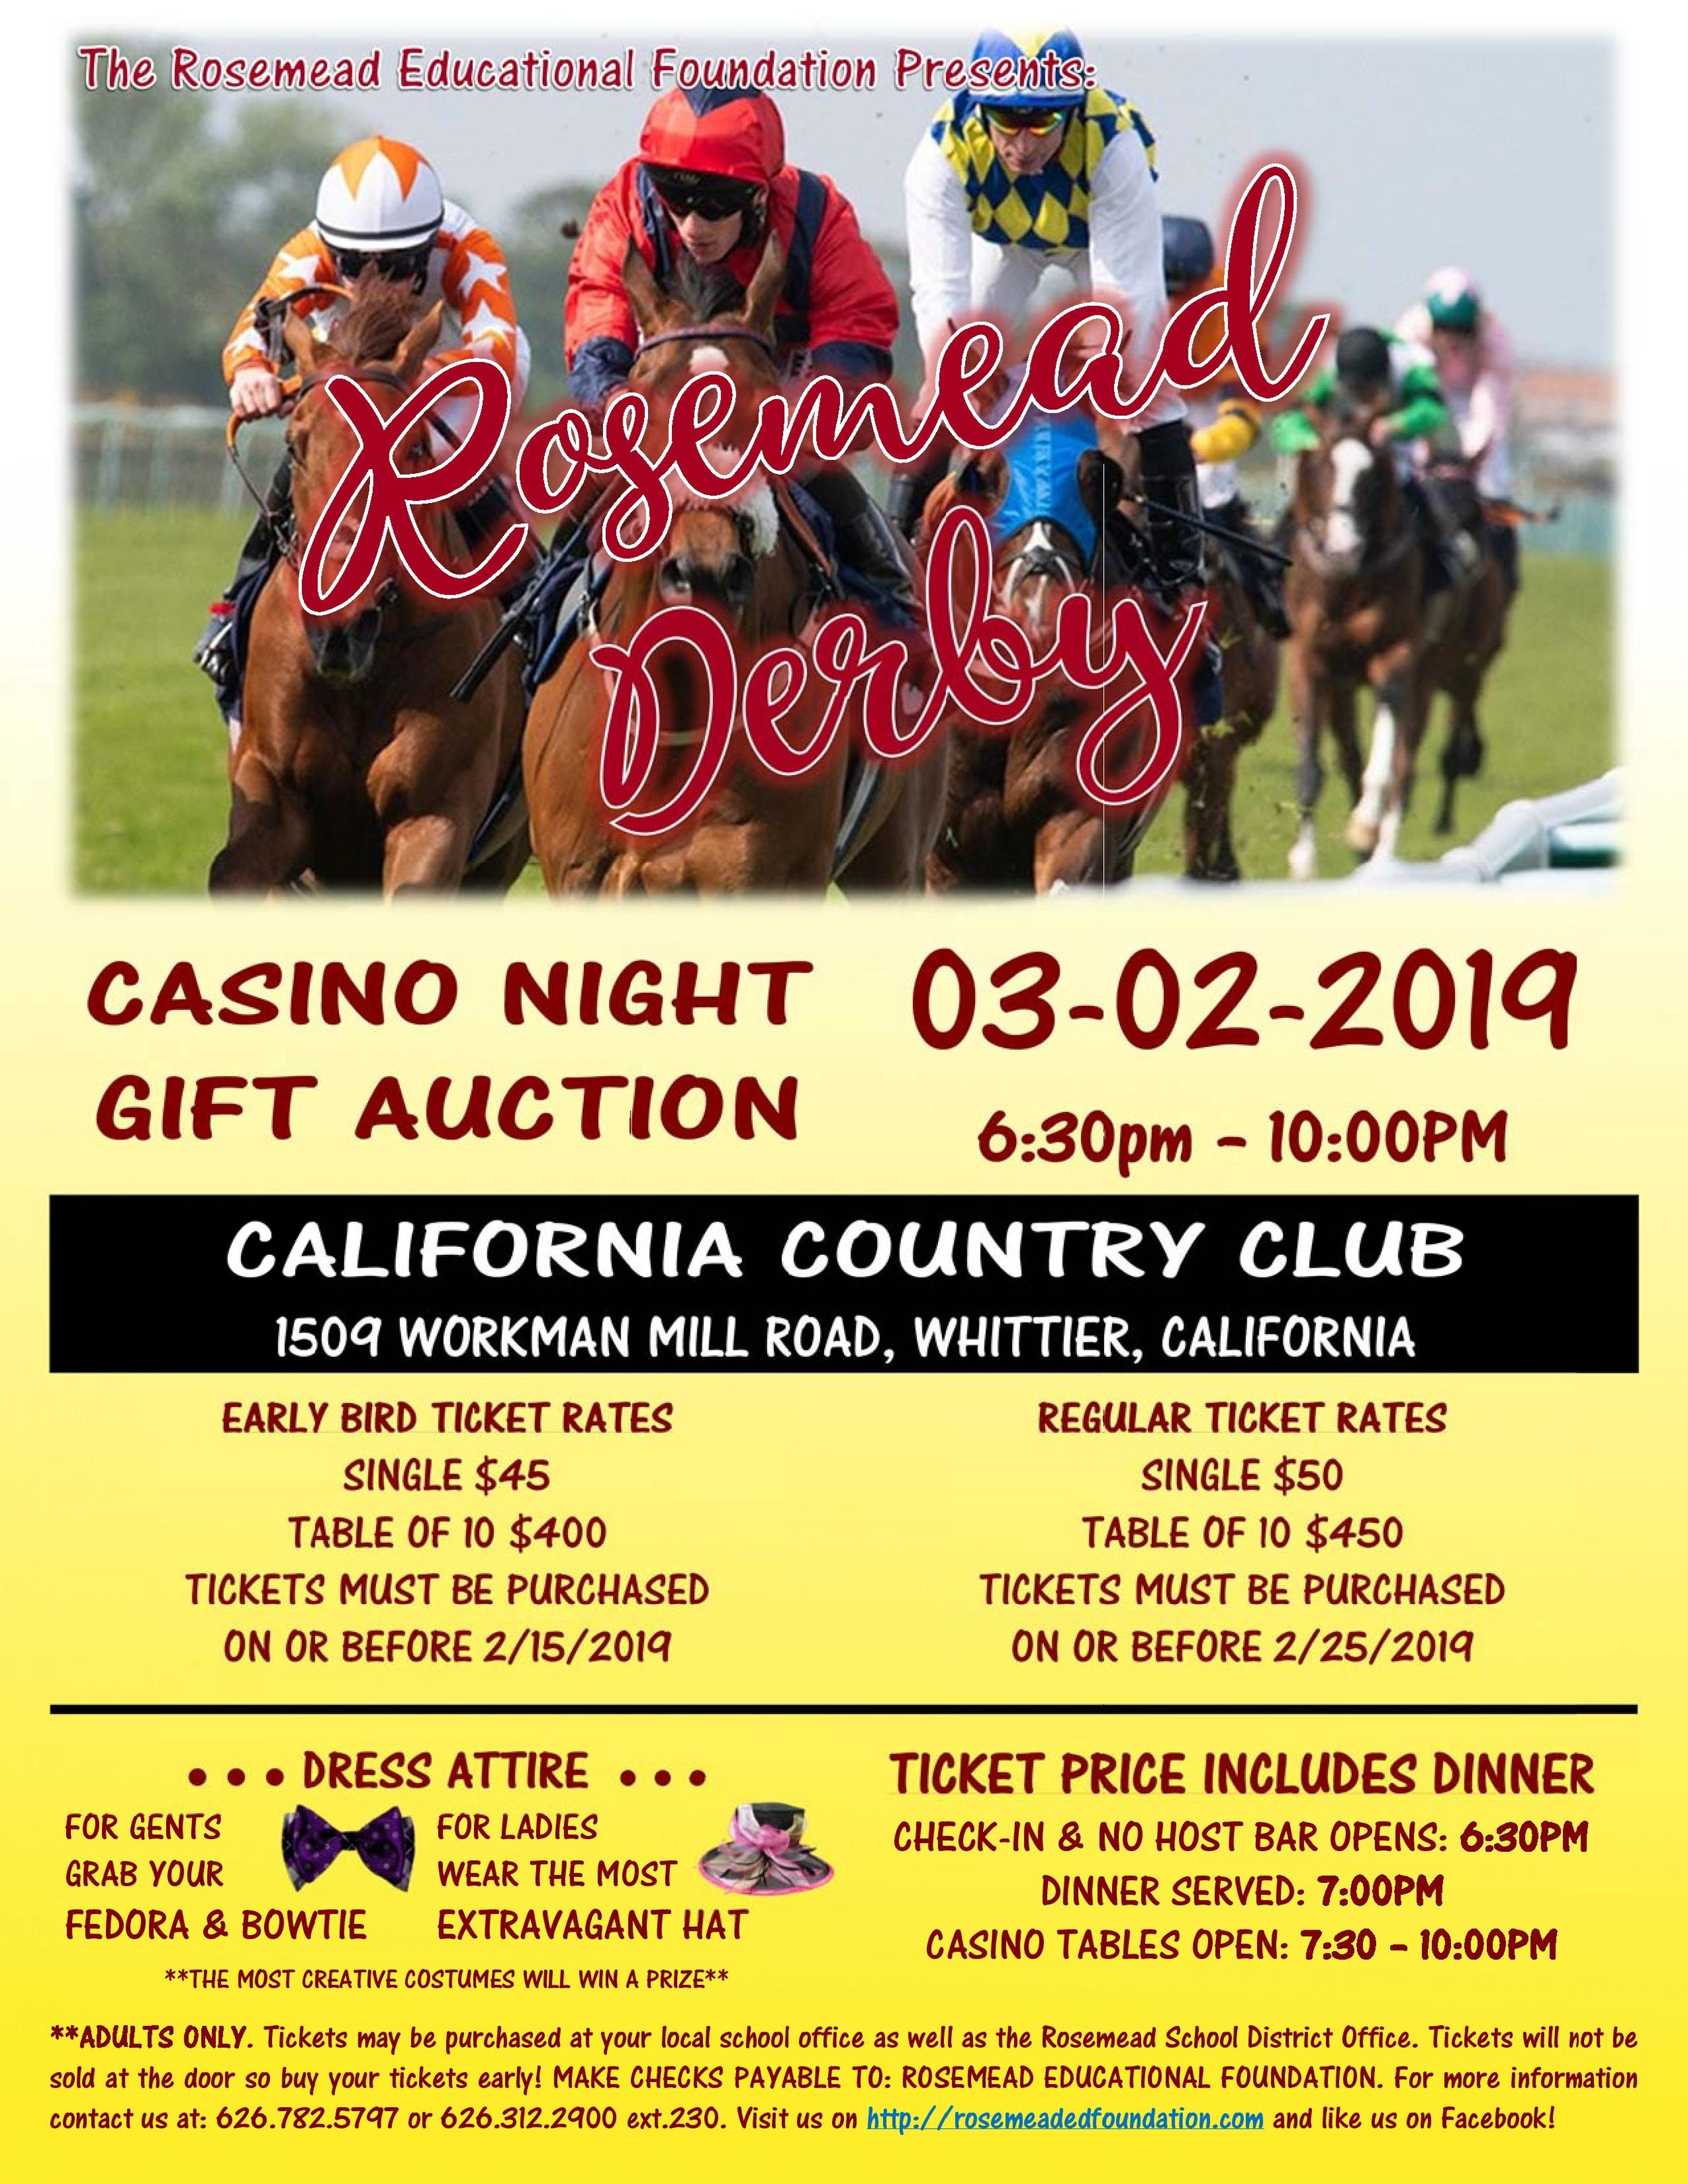 the rosemead educational foundation's Casino night - March 3rd, 2019